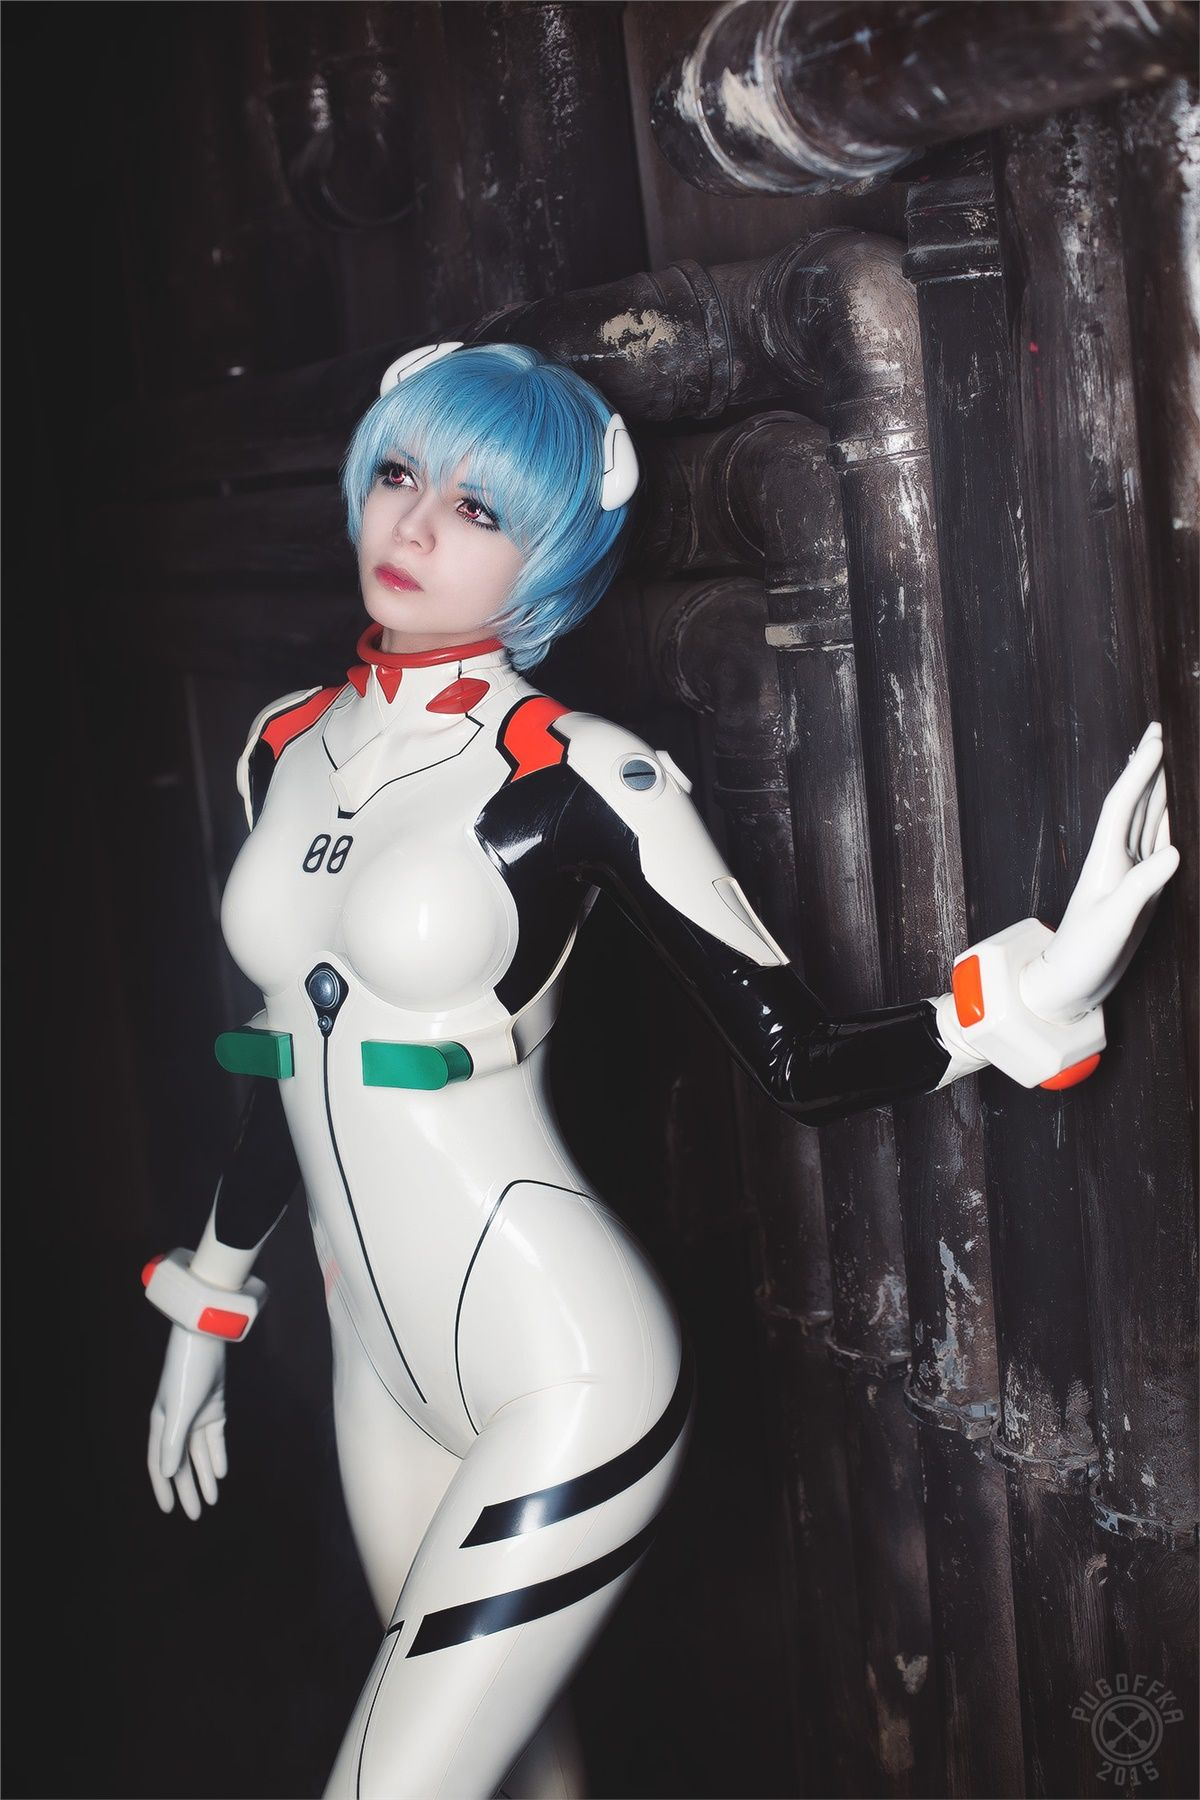 female space suit anime cosplay - photo #10